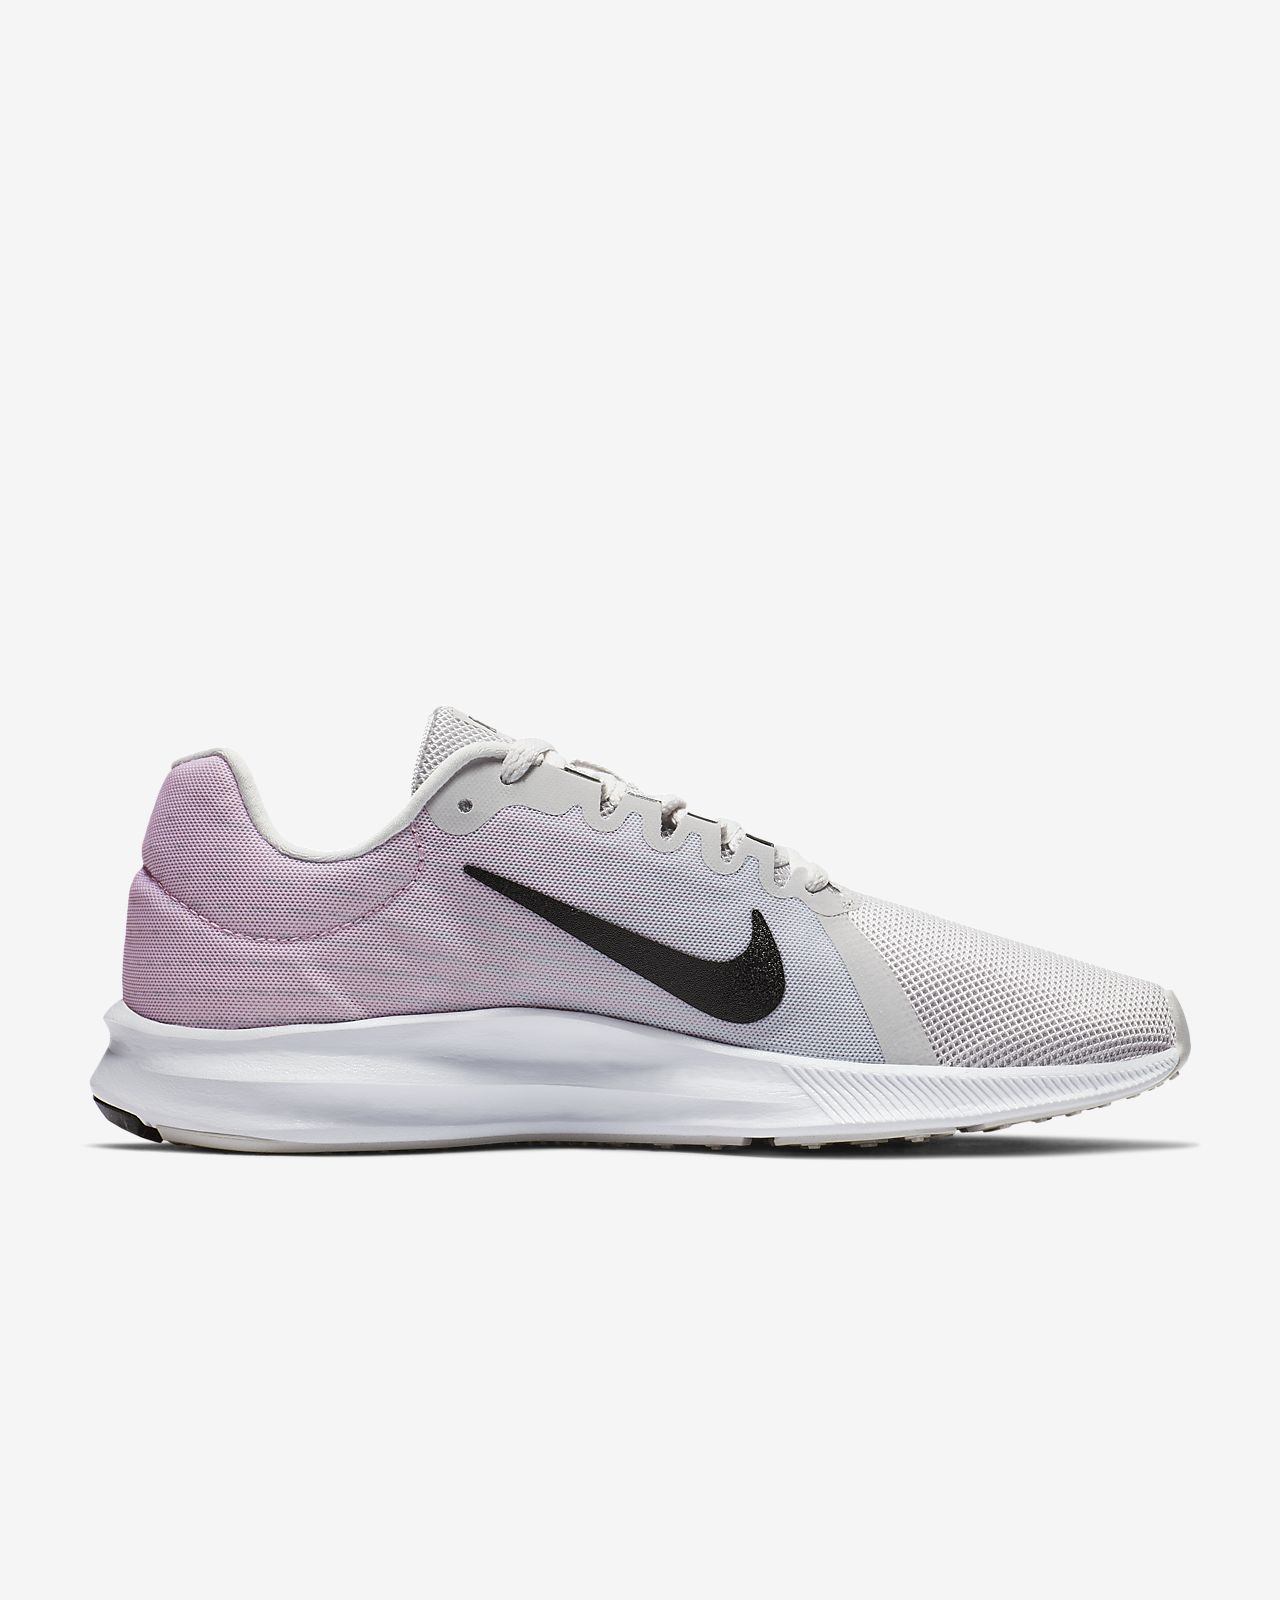 097595f5760e8 Nike Downshifter 8 Women s Running Shoe. Nike.com AU